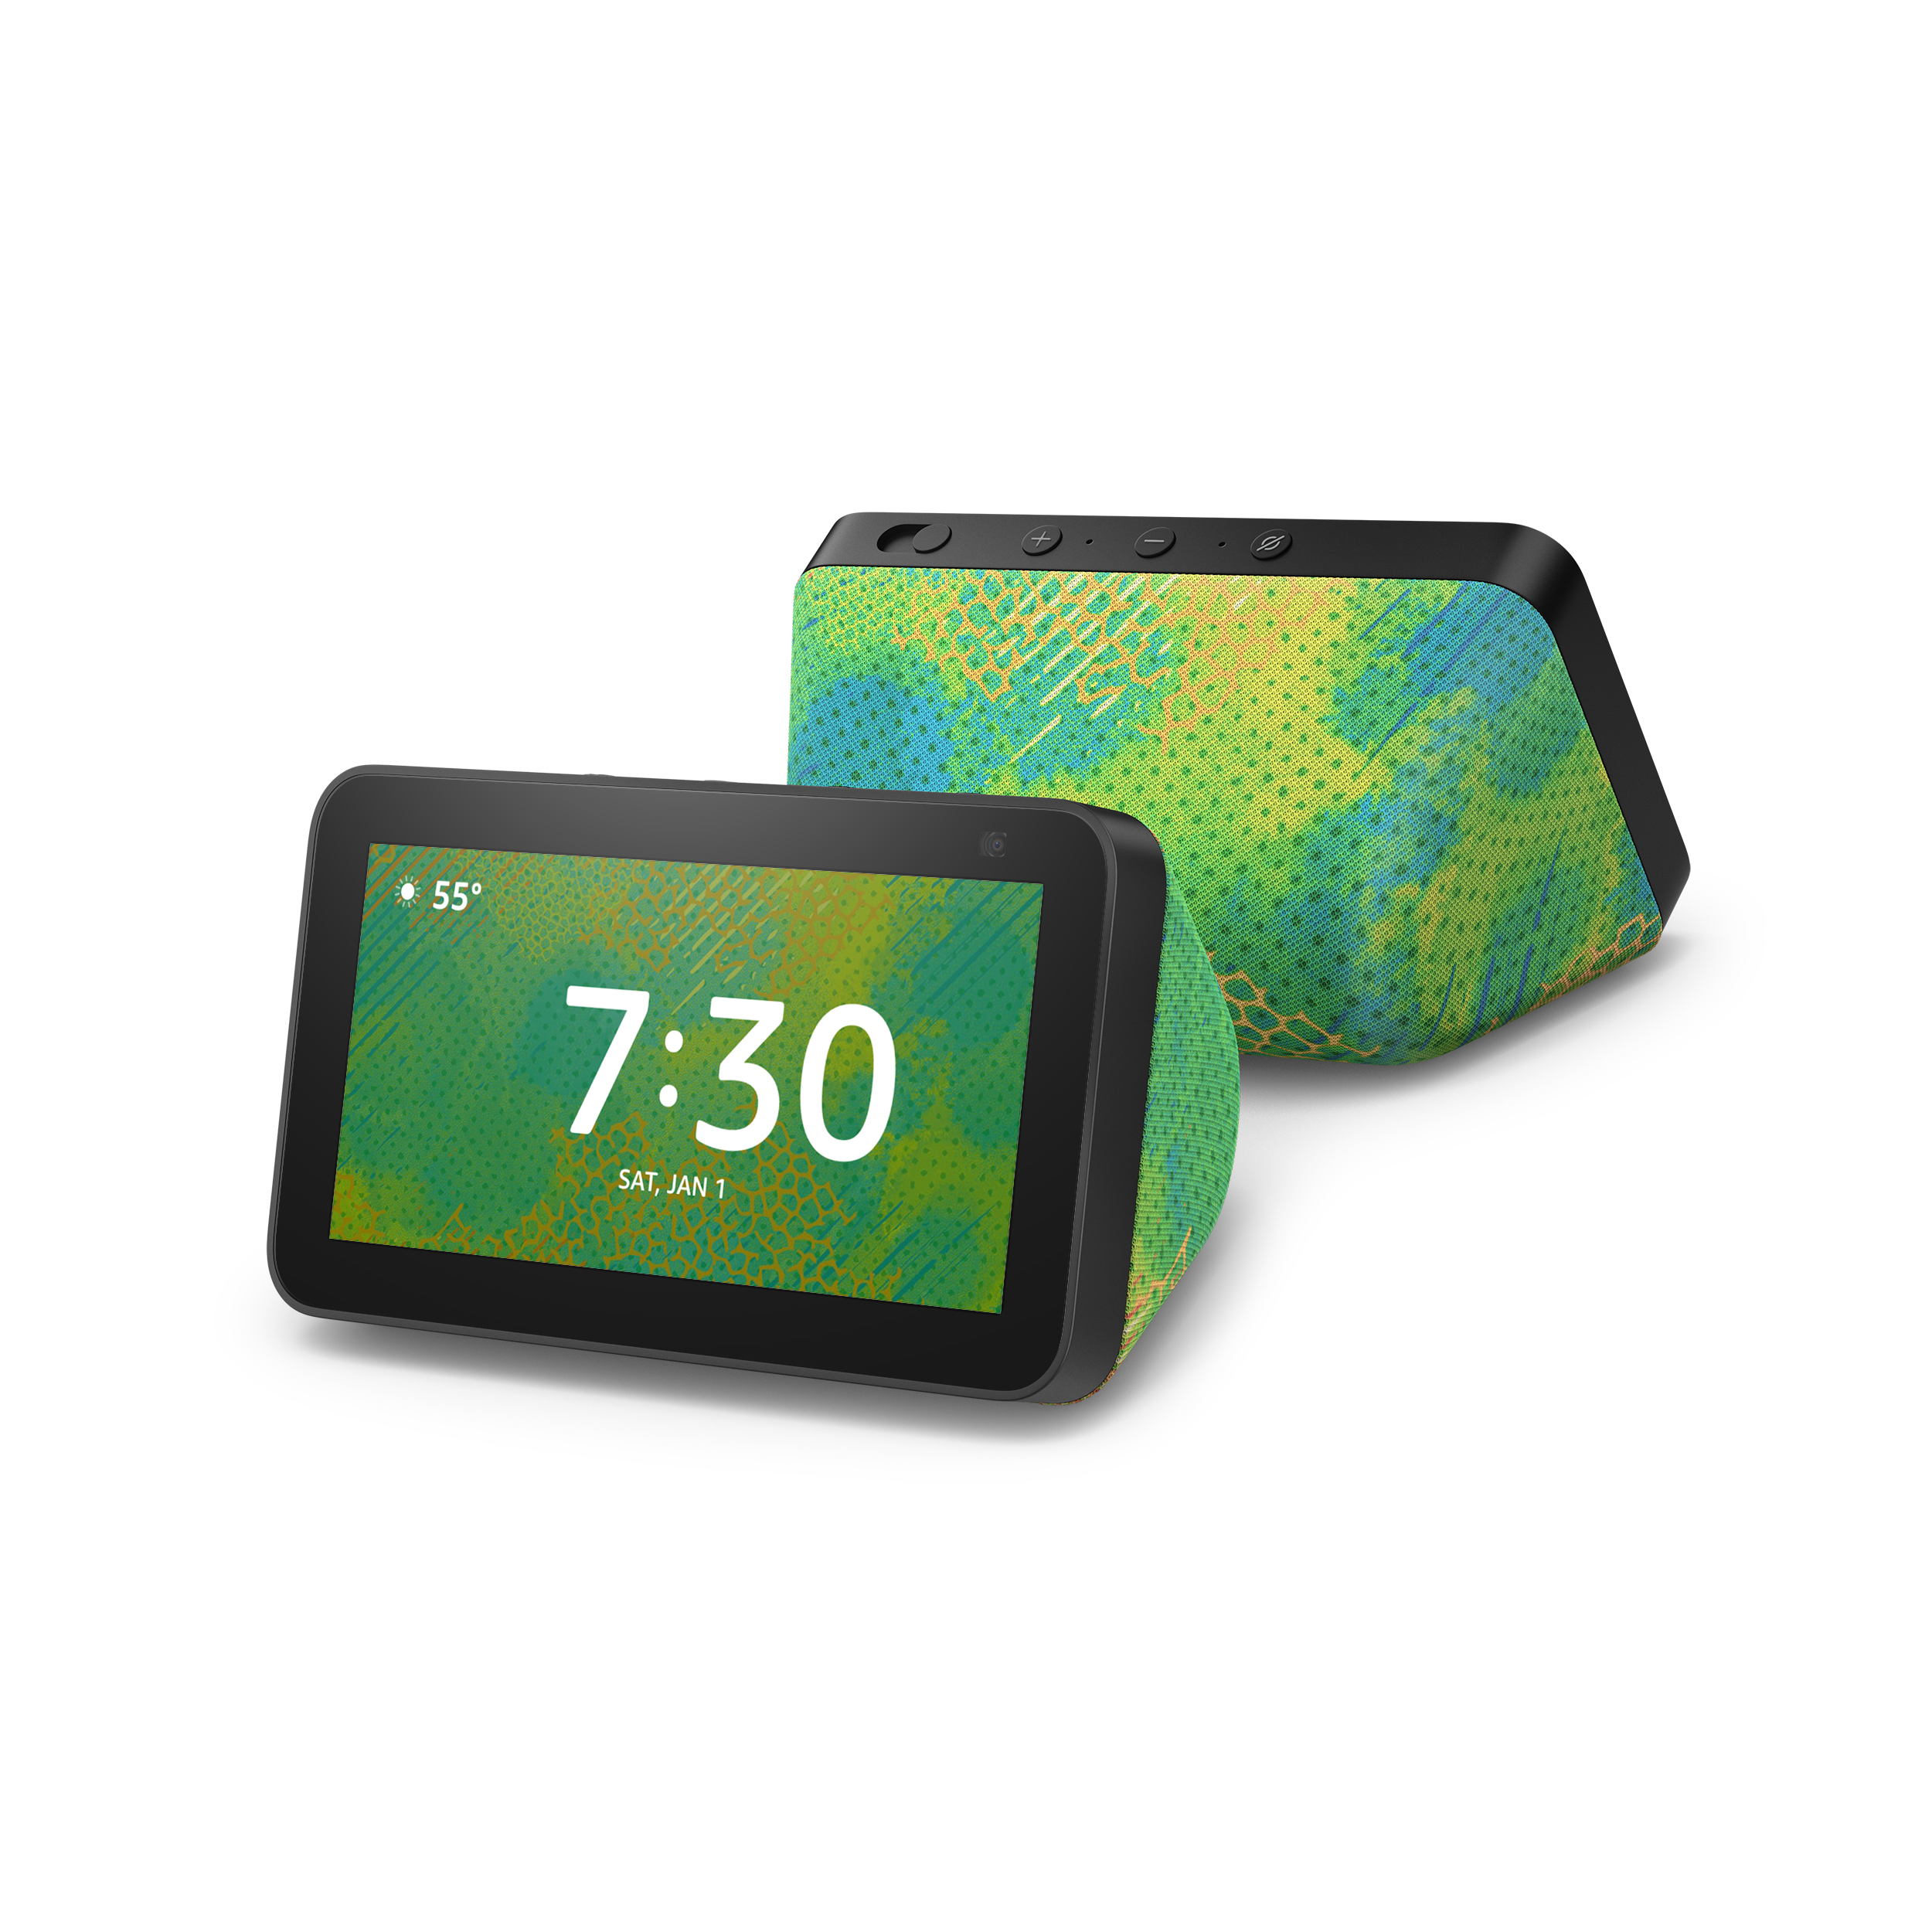 Amazon updates Echo Show line with a pan and zoom camera and a kids model